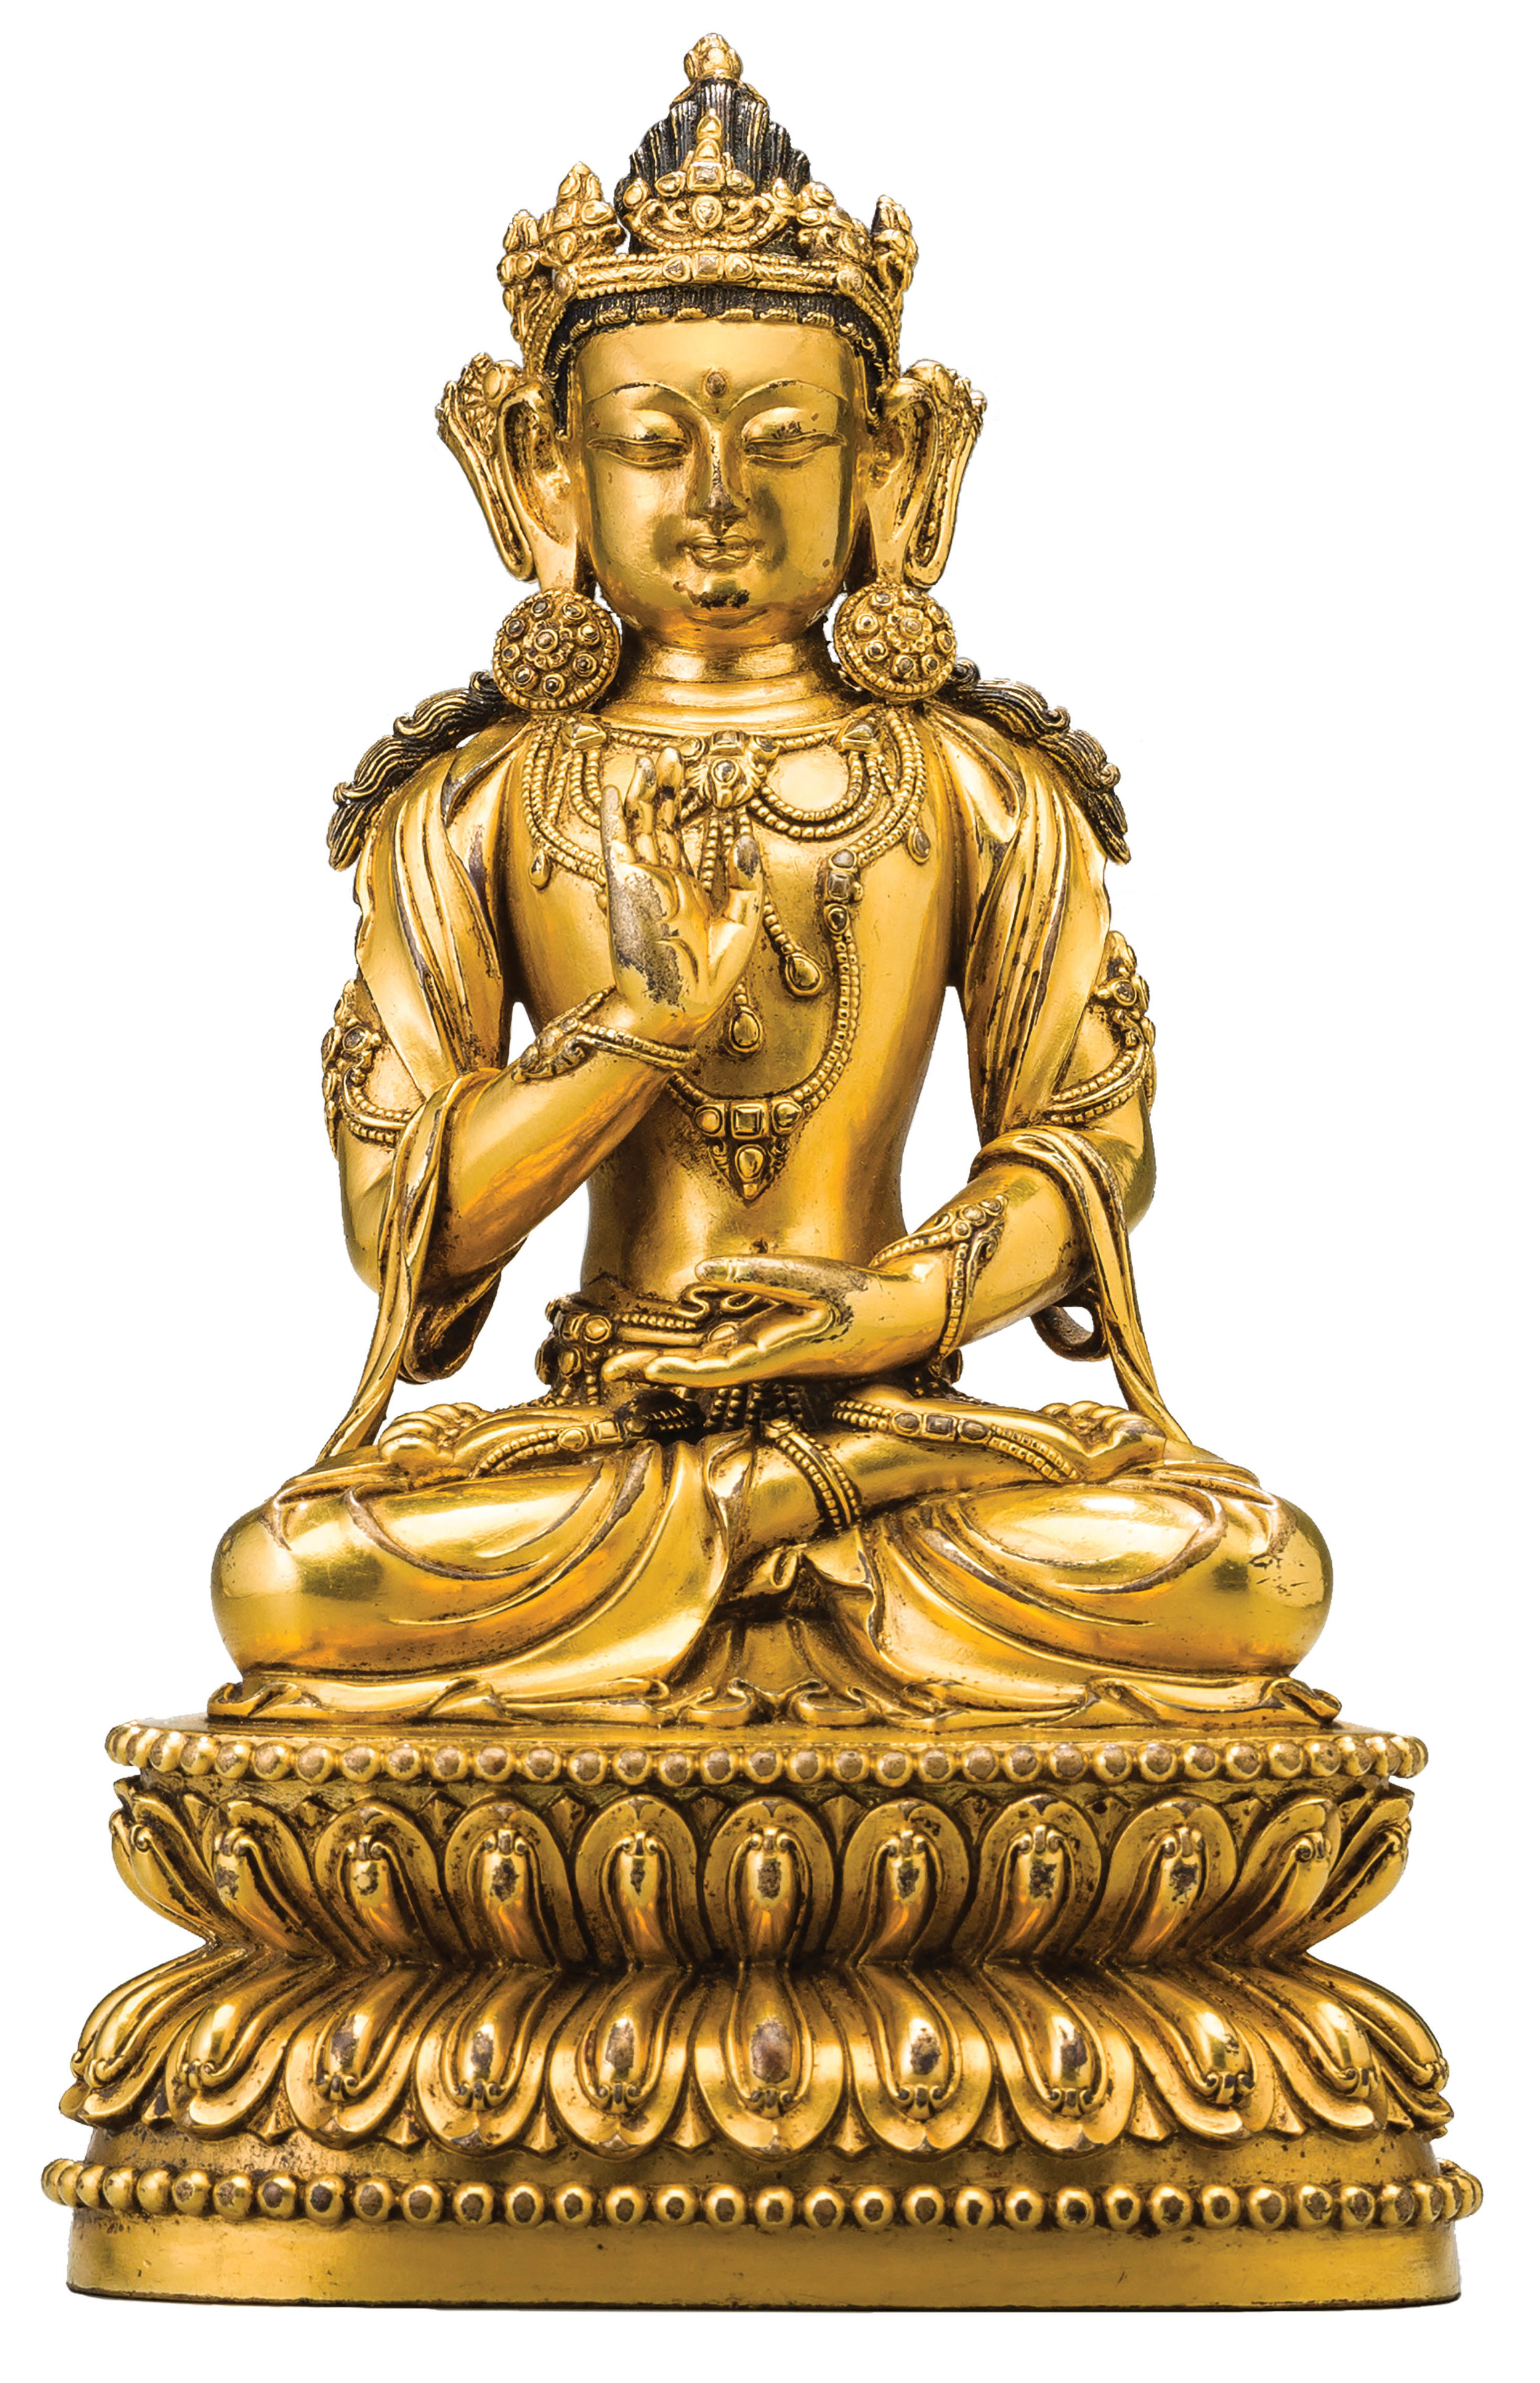 Buddha Amoghasiddhi (detail), China, Yongle Mark and Period, 1402-1424, gilt copper alloy with pigment